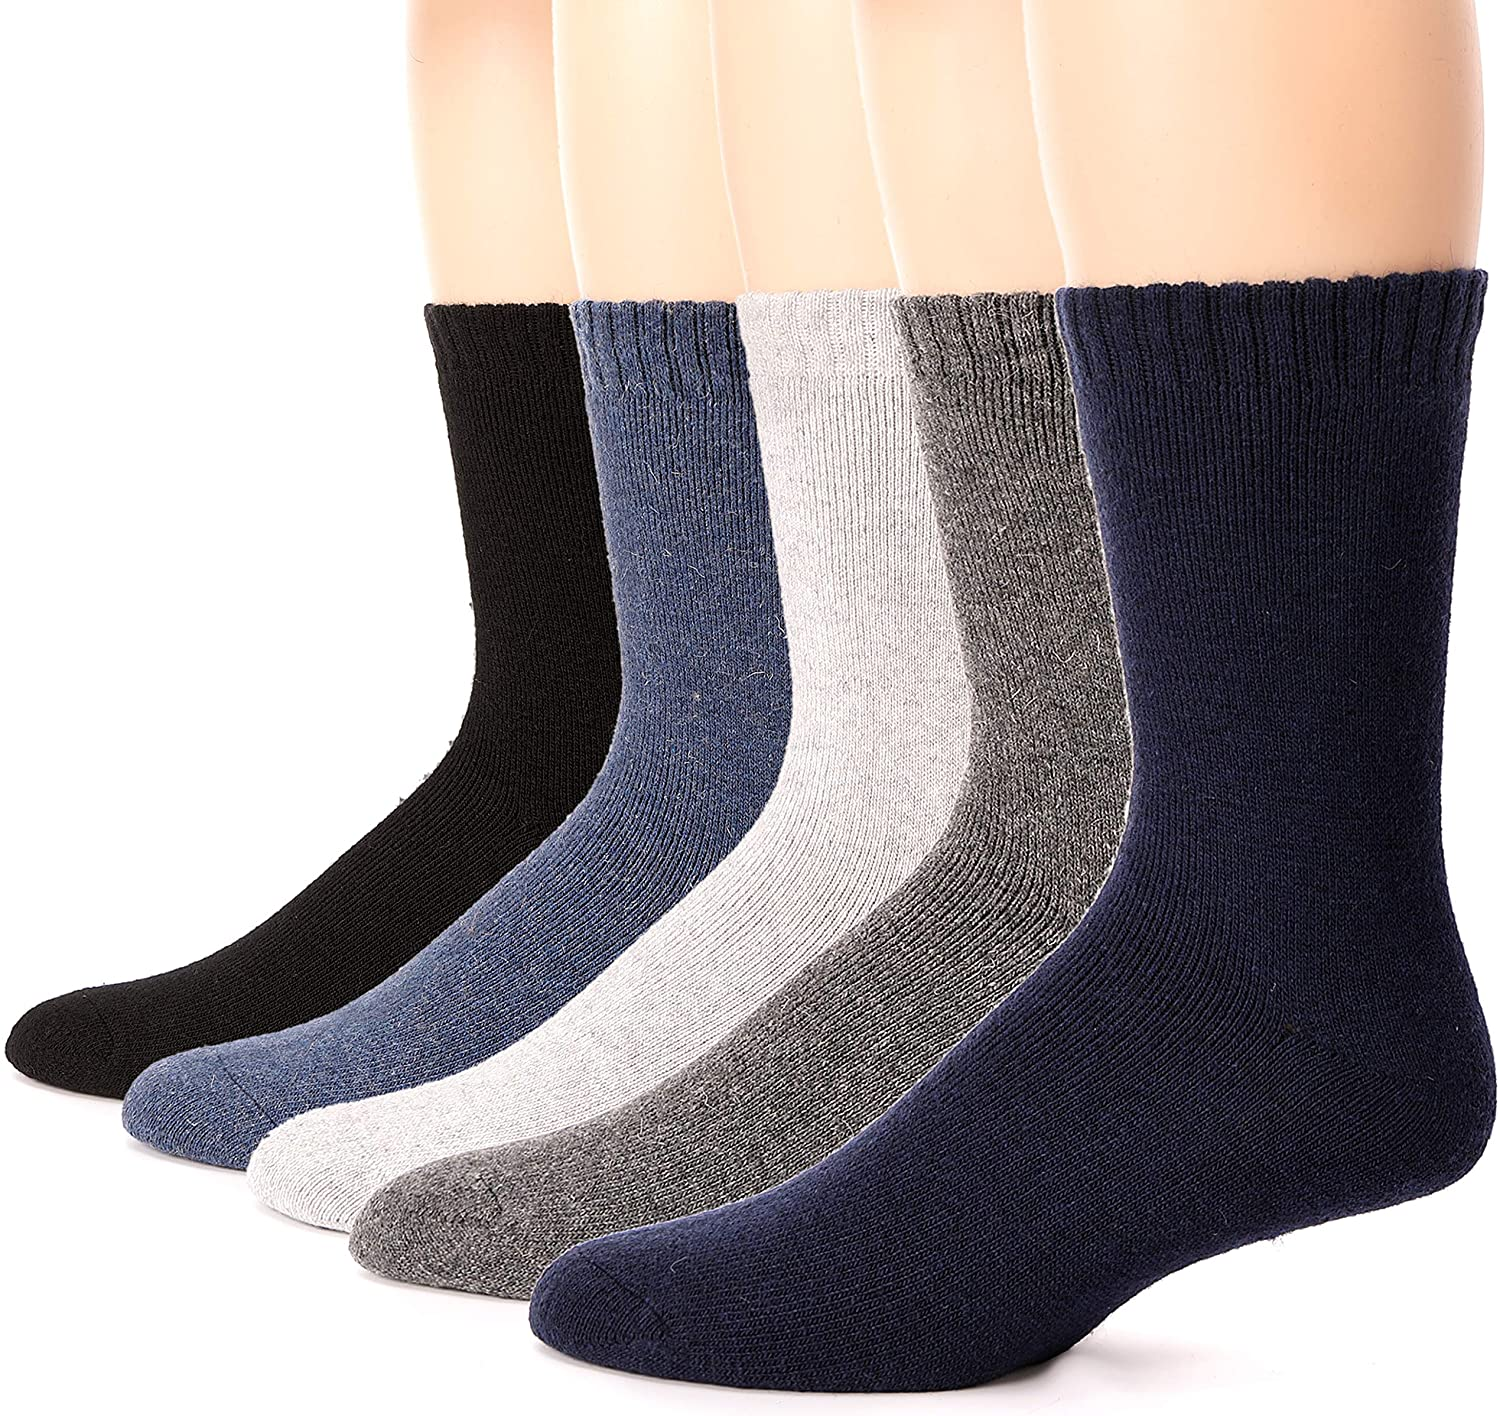 Mens Wool Fuzzy Heavy Thermal Thick Warm Winter Socks 5 Pairs